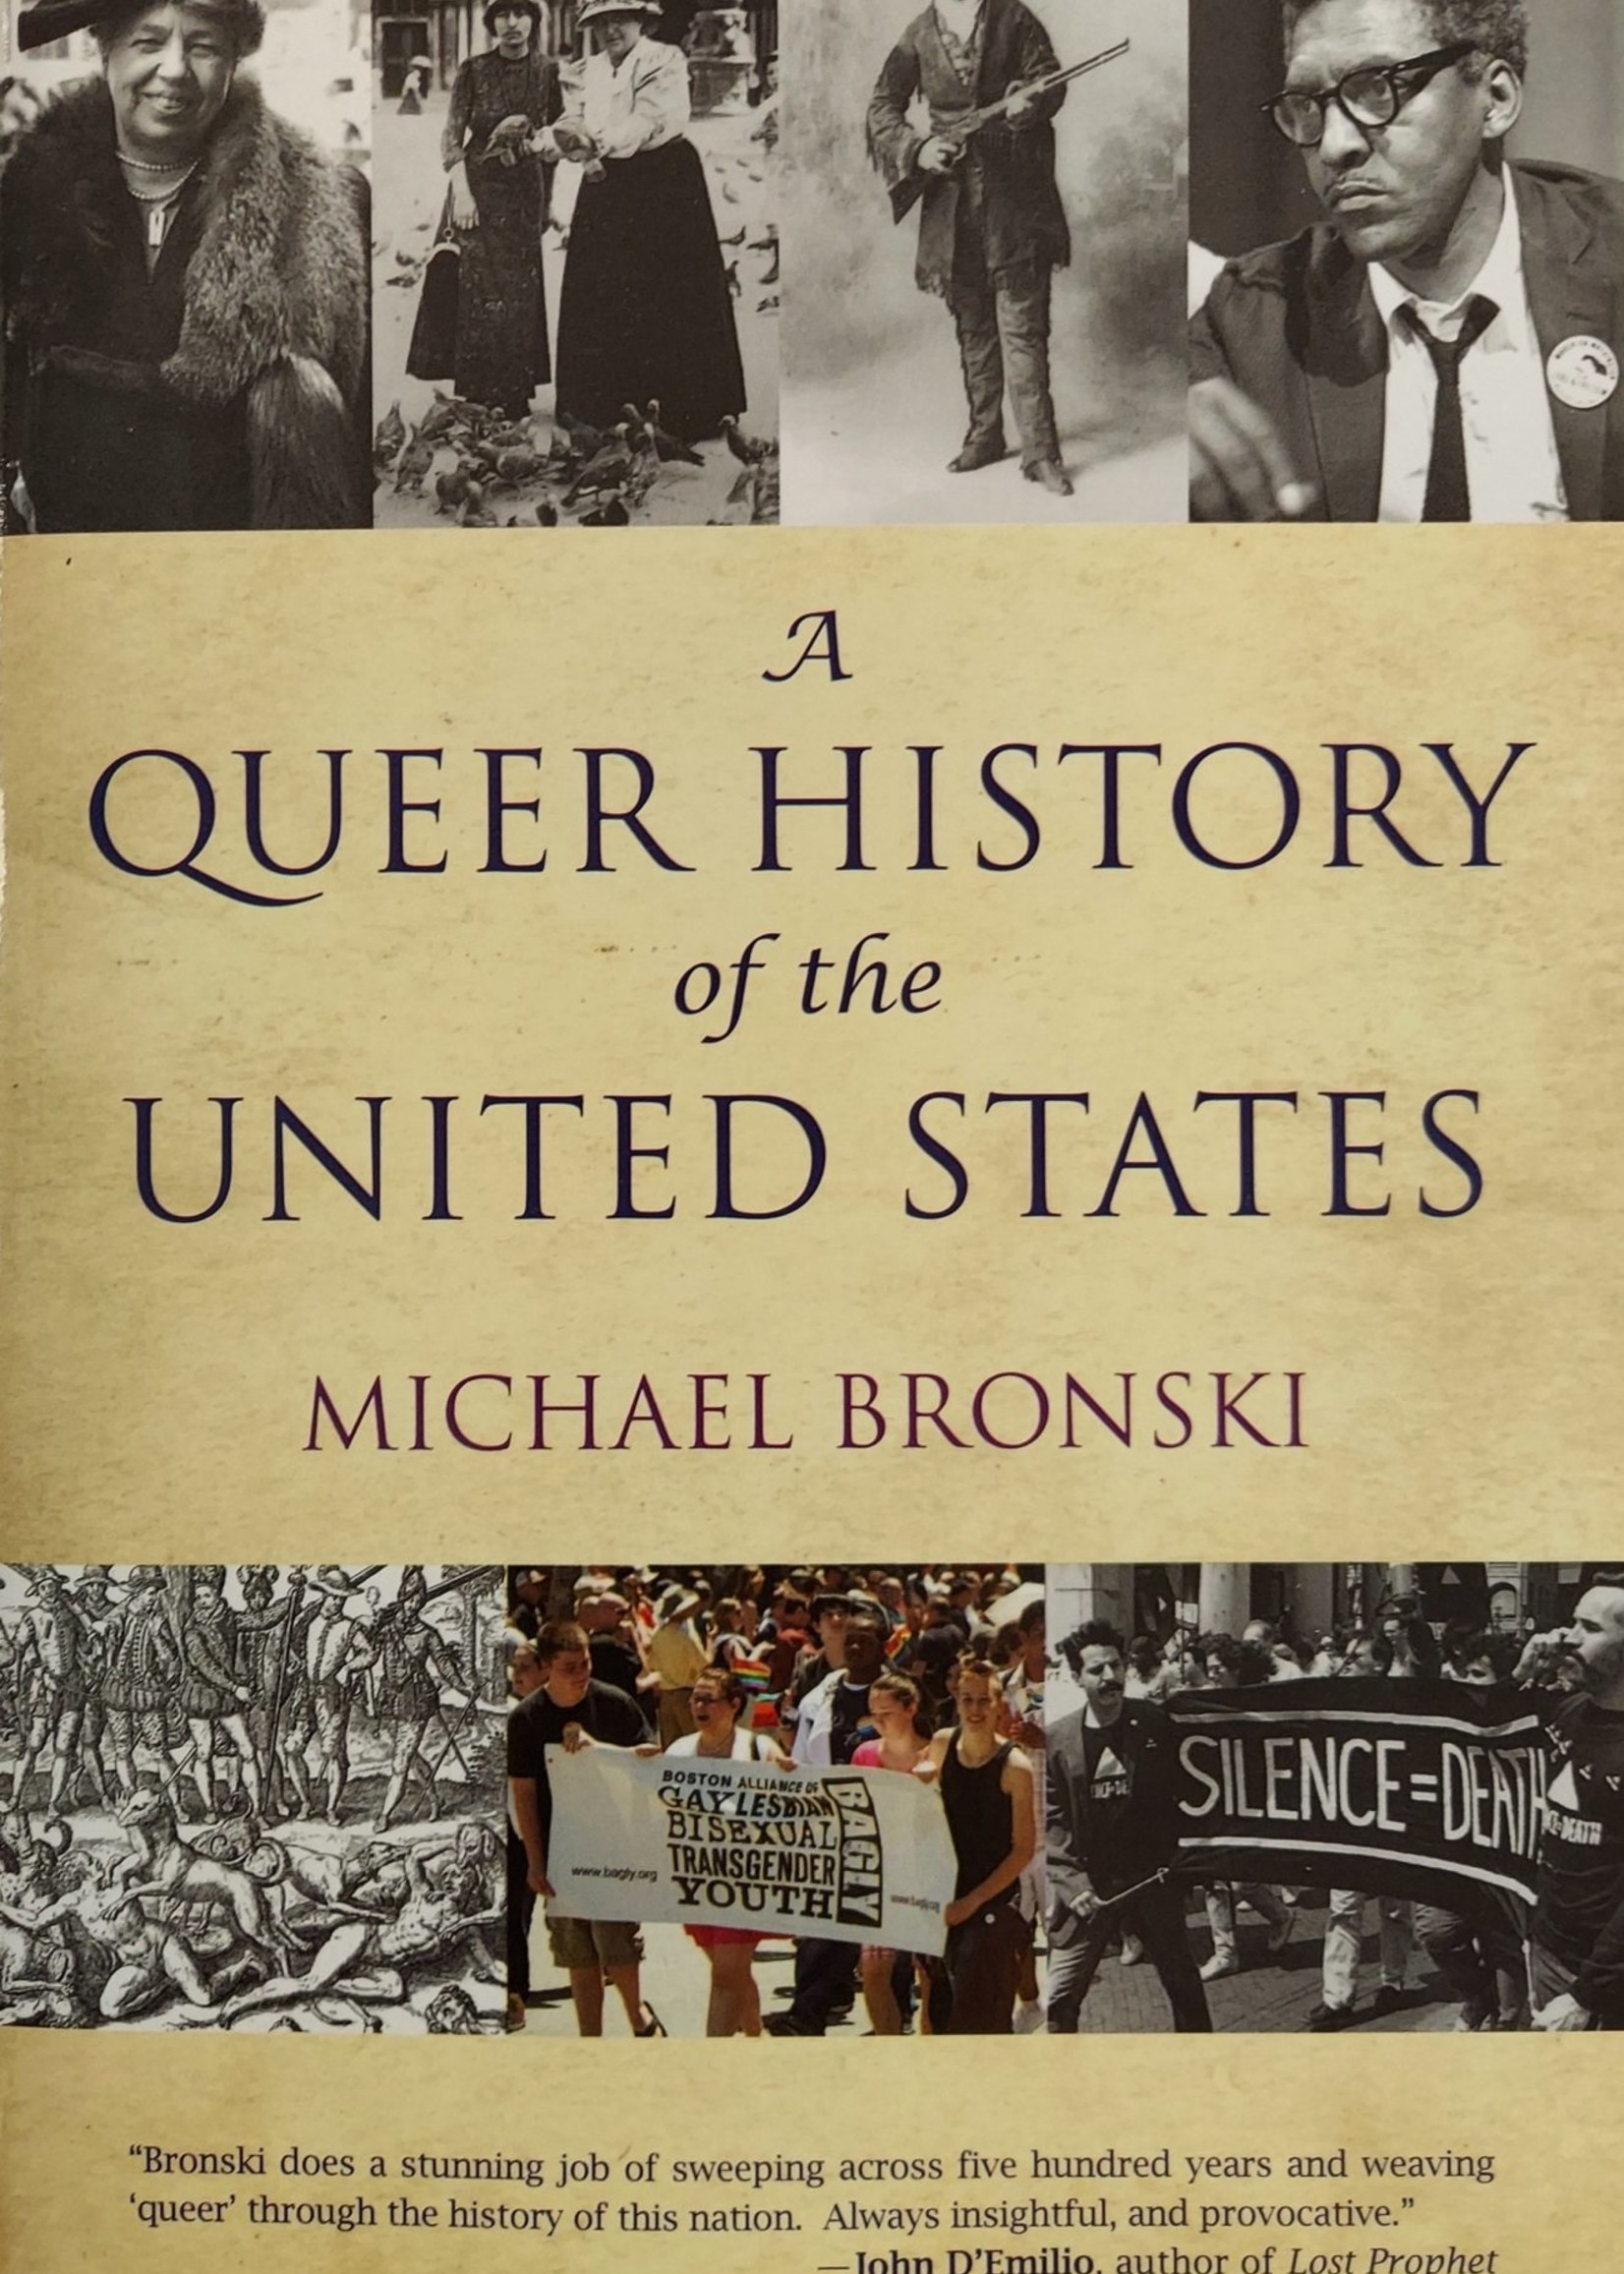 A Queer History of the United States-By MICHAEL BRONSKI